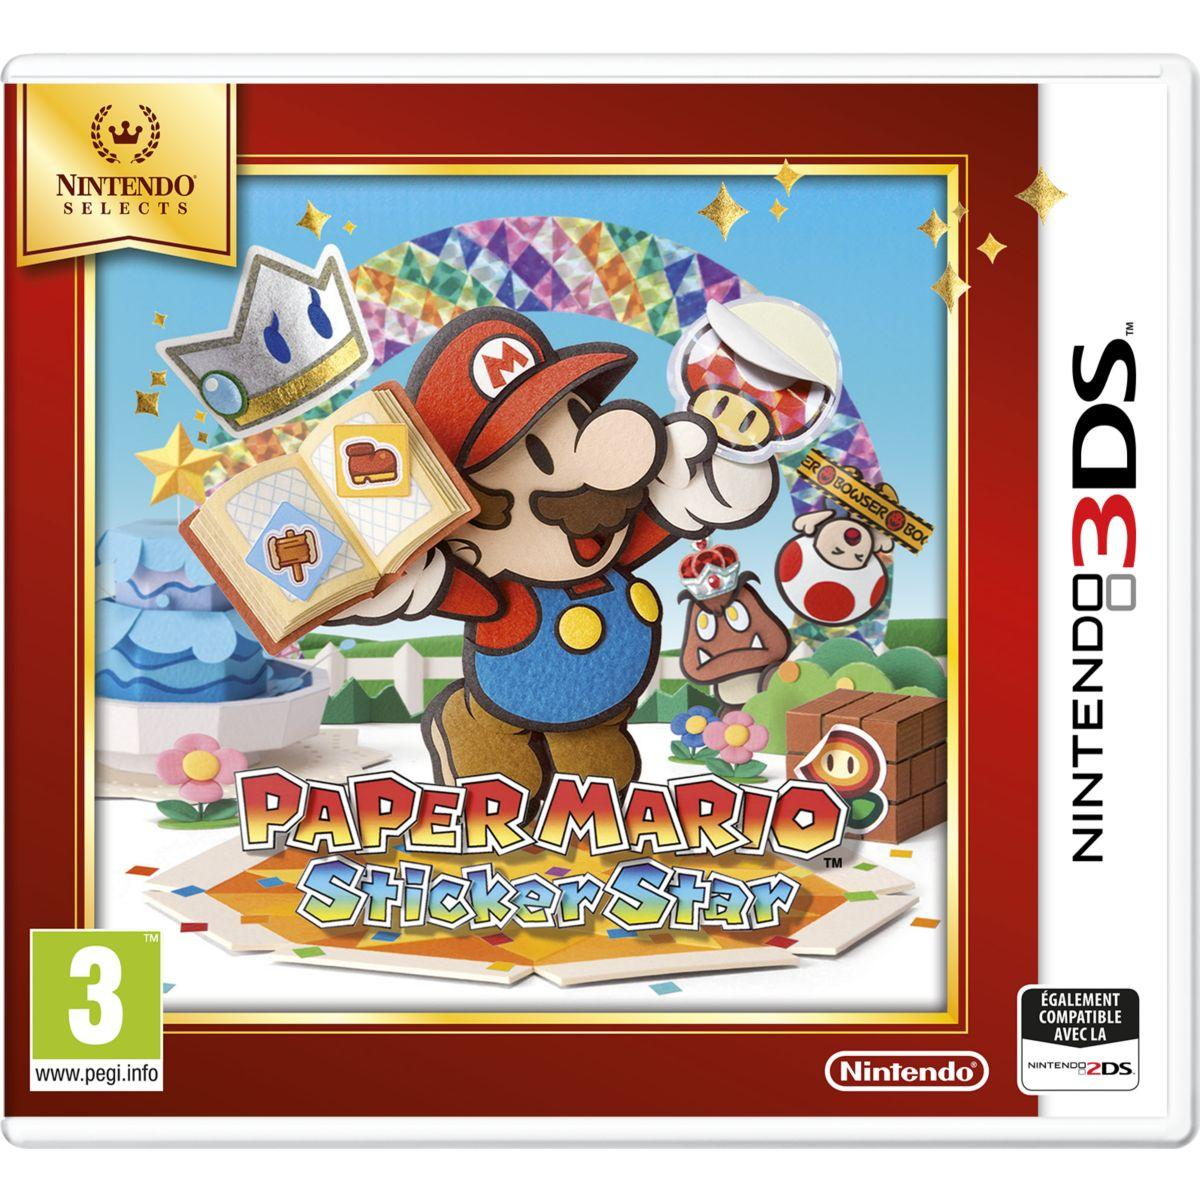 Jeu 3ds nintendo paper mario sticker star selects - 2% de remise immédiate avec le code : cool2 (photo)